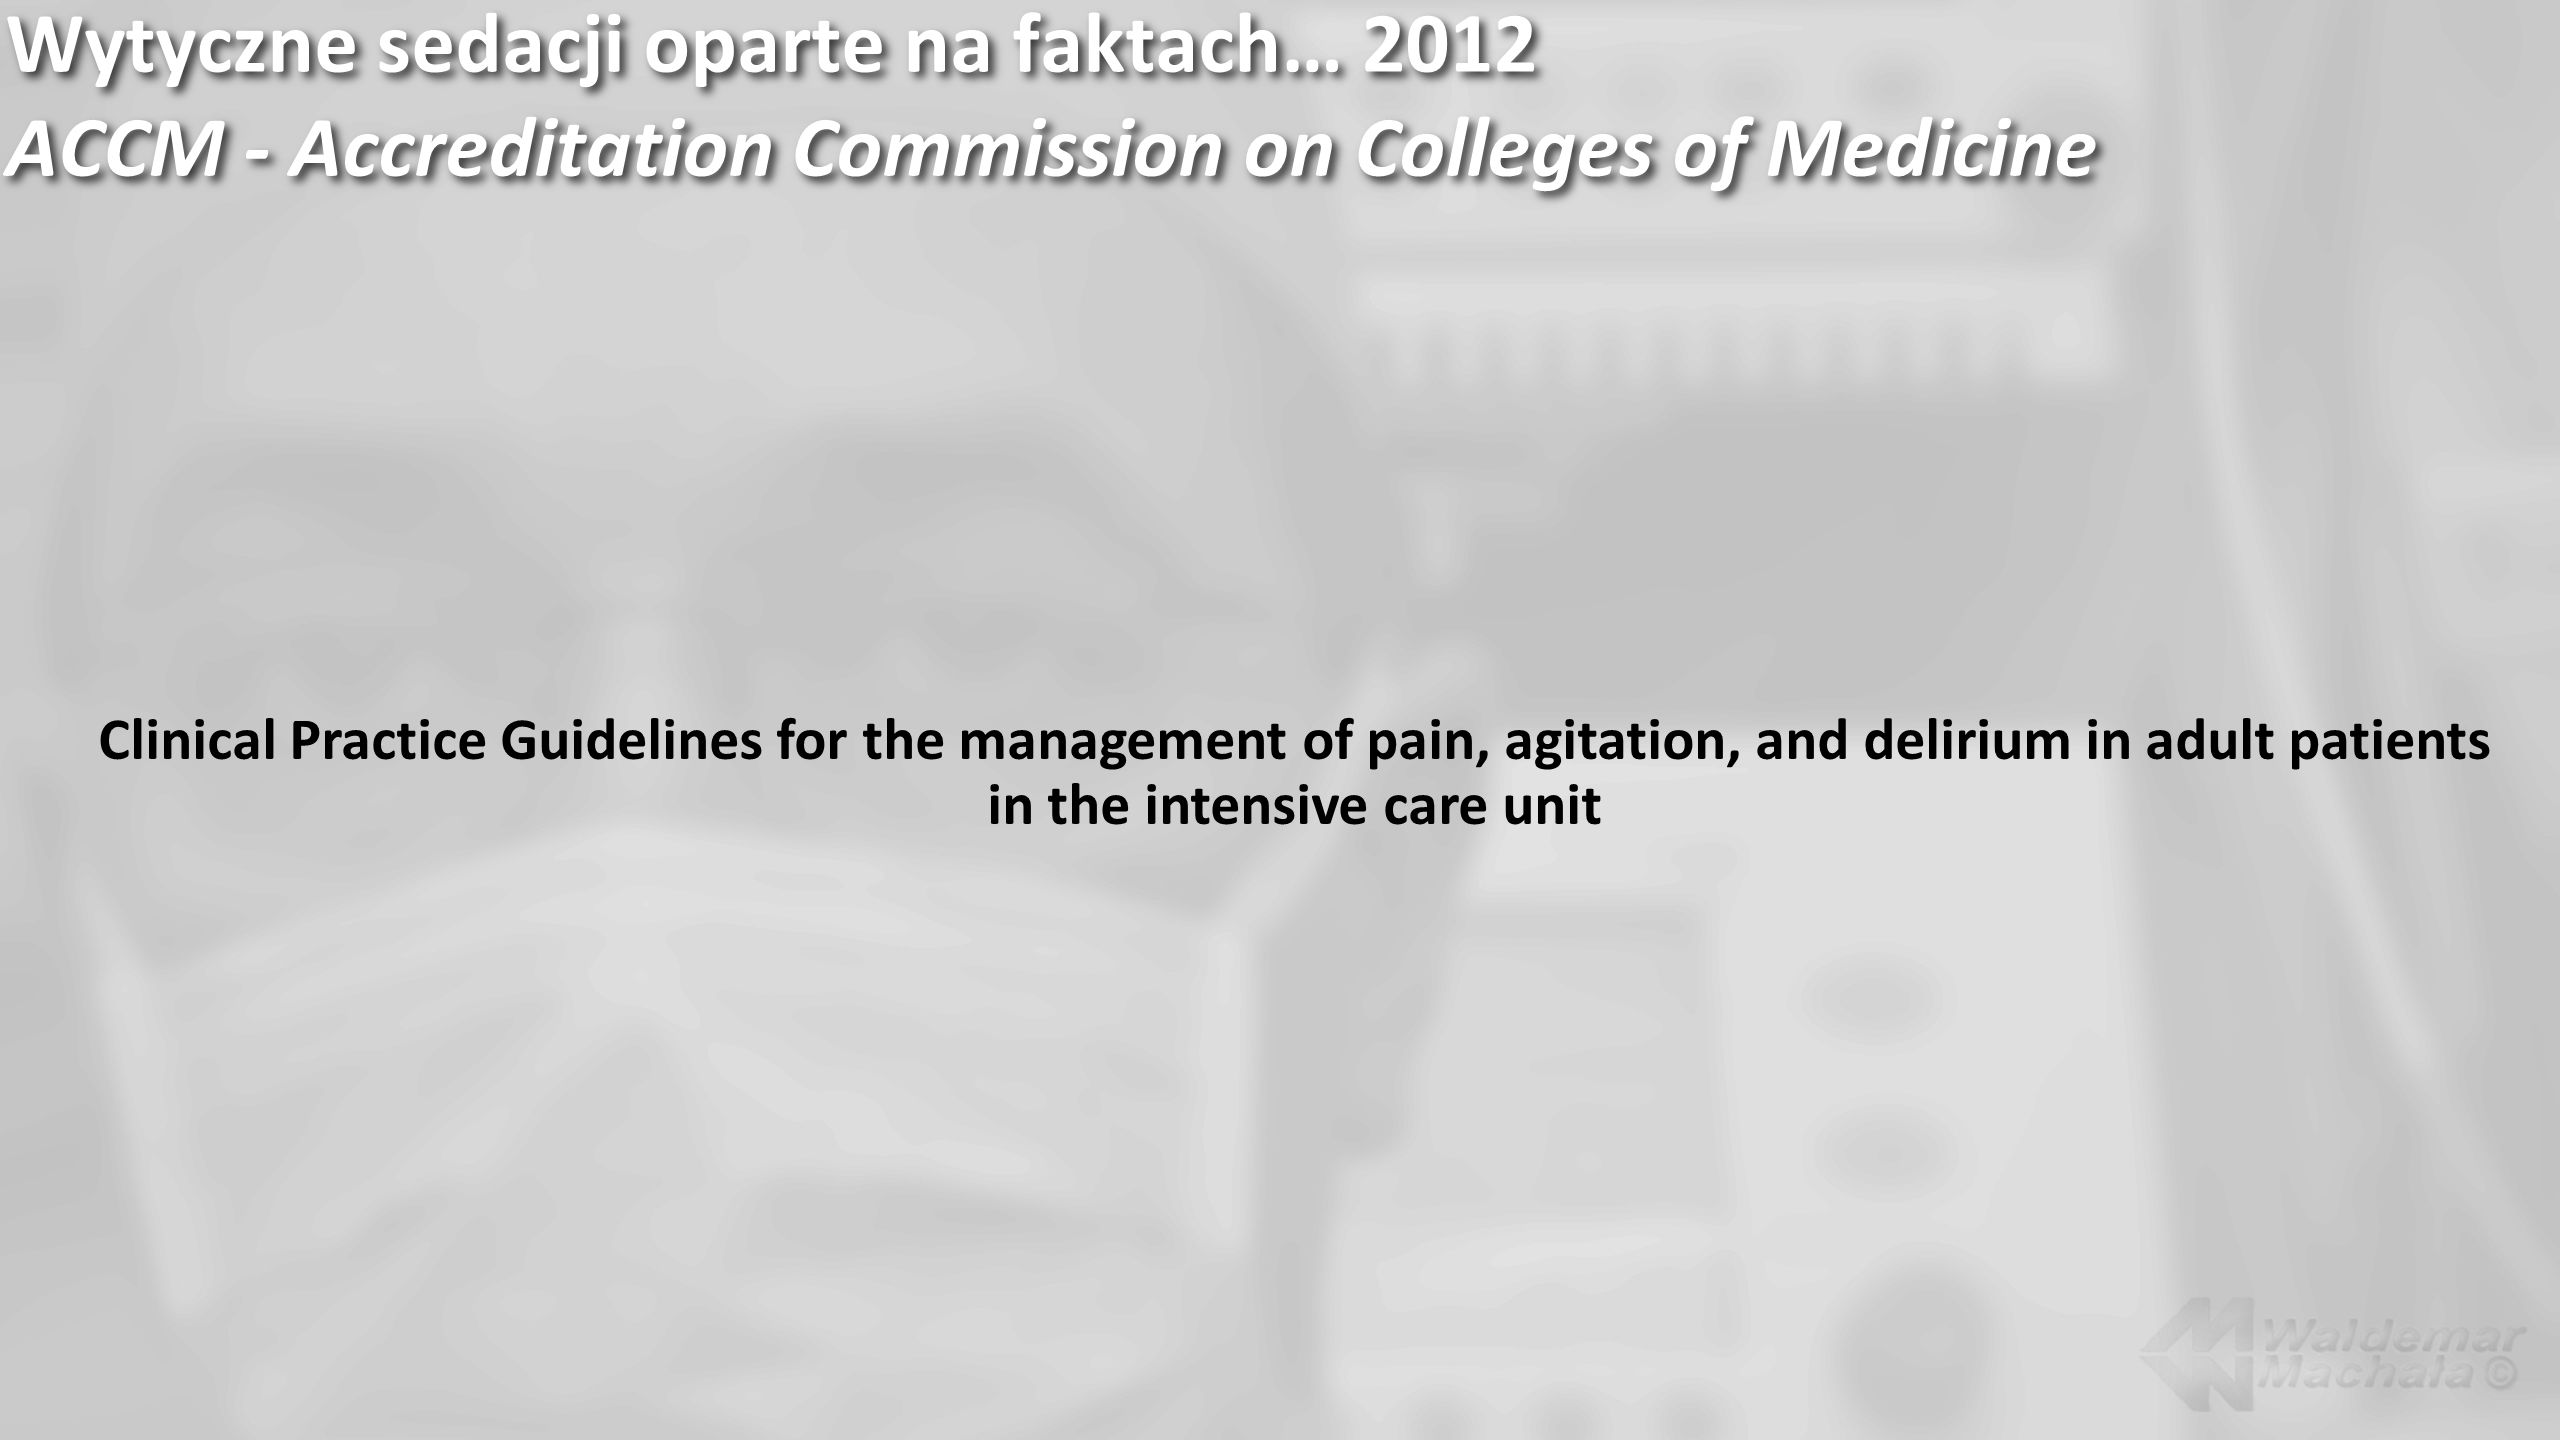 Wytyczne sedacji oparte na faktach… 2012 ACCM - Accreditation Commission on Colleges of Medicine Clinical Practice Guidelines for the management of pa